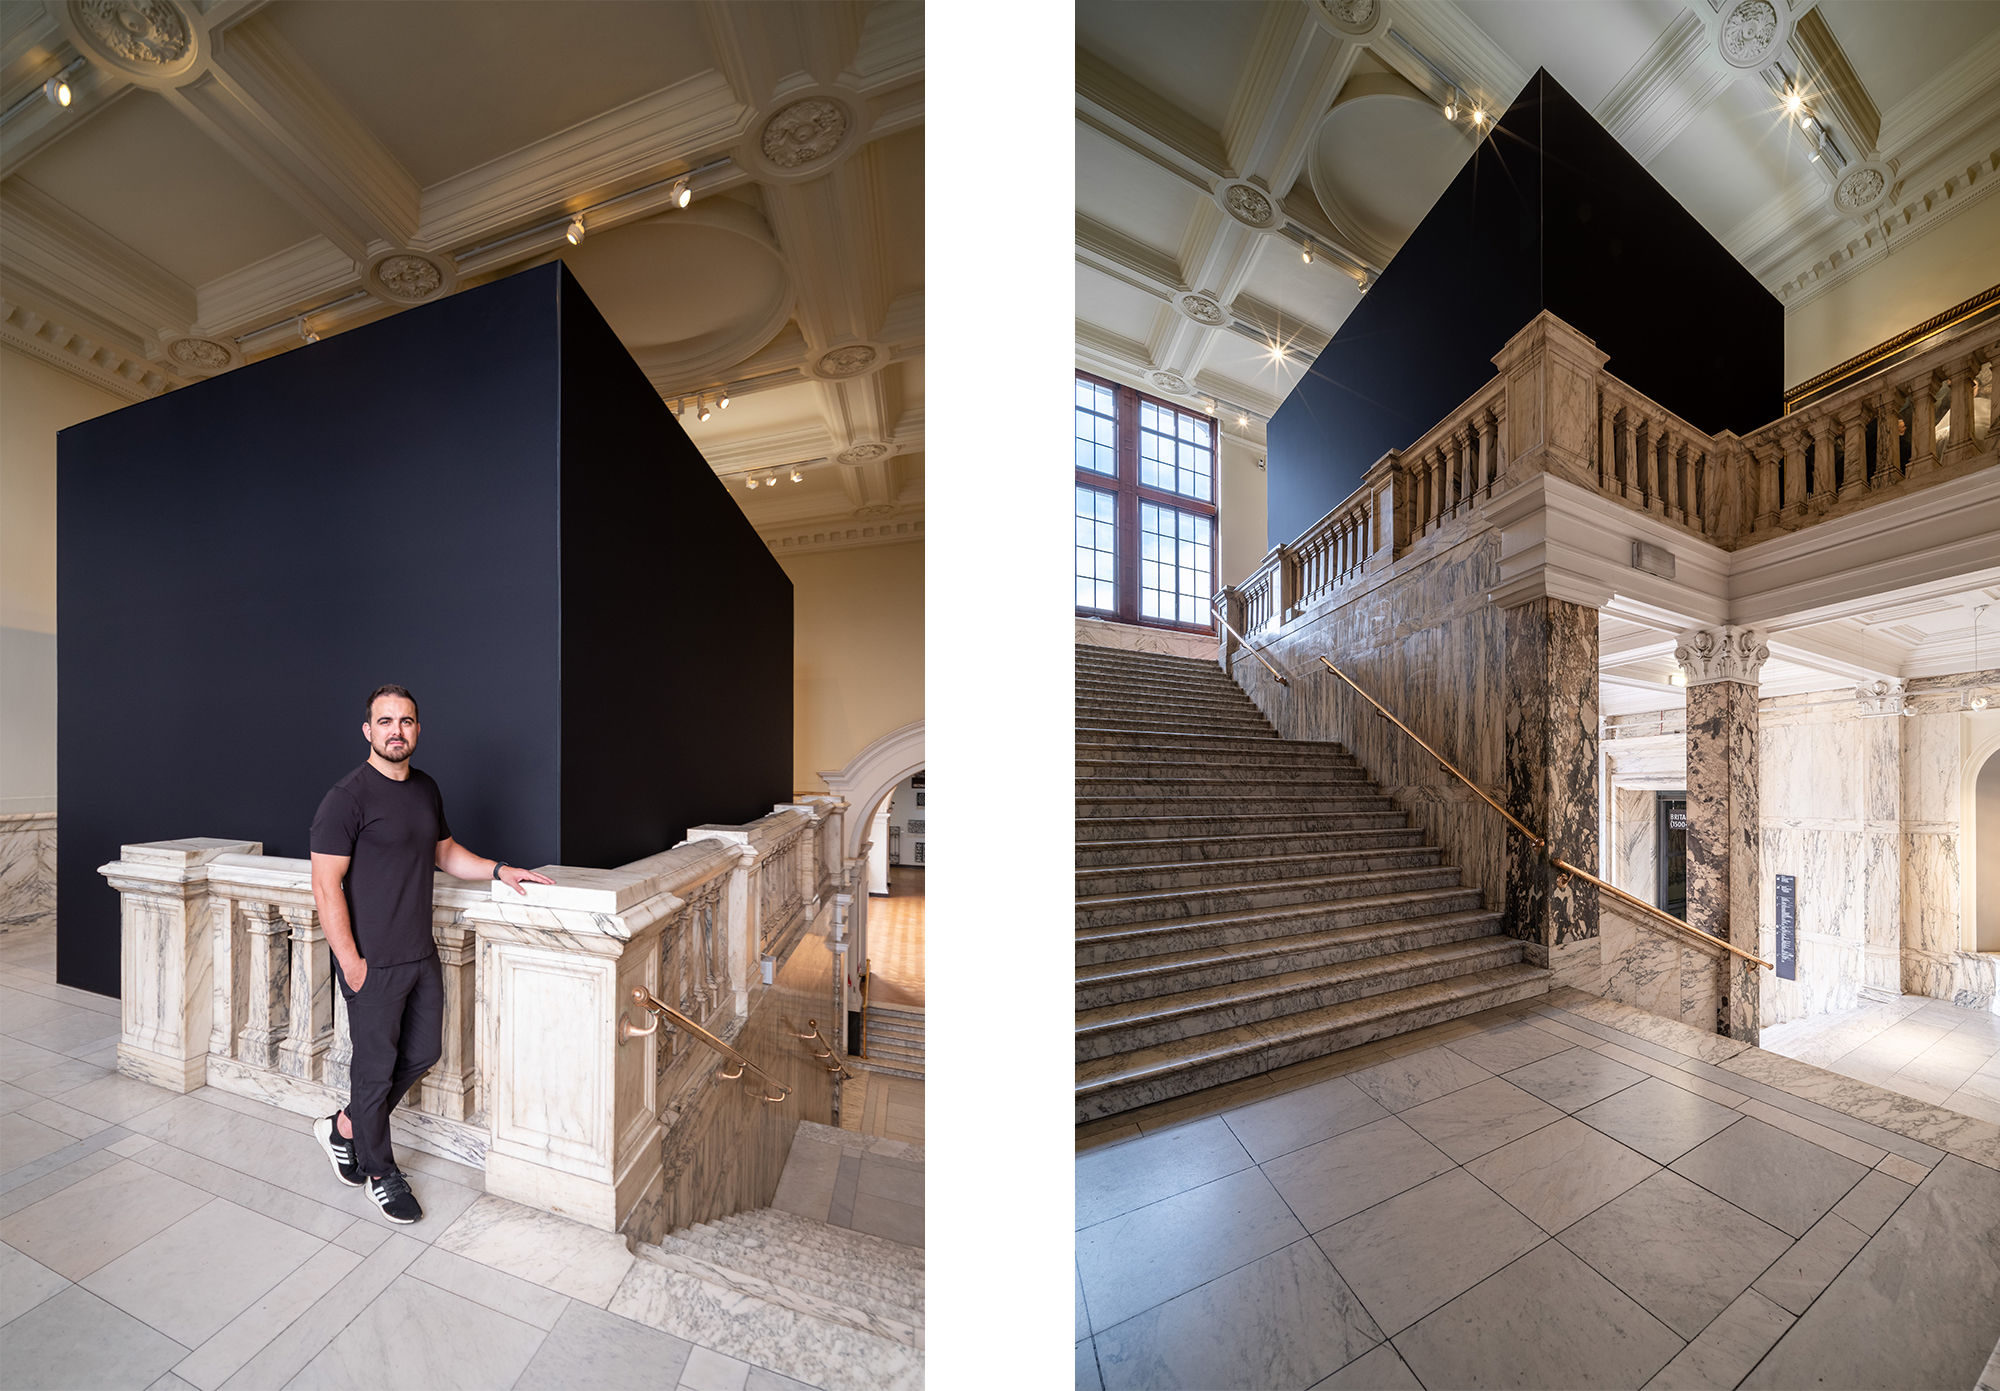 Outside AVALANCHE exhibition: a massive black cube in a Victorian hallway.